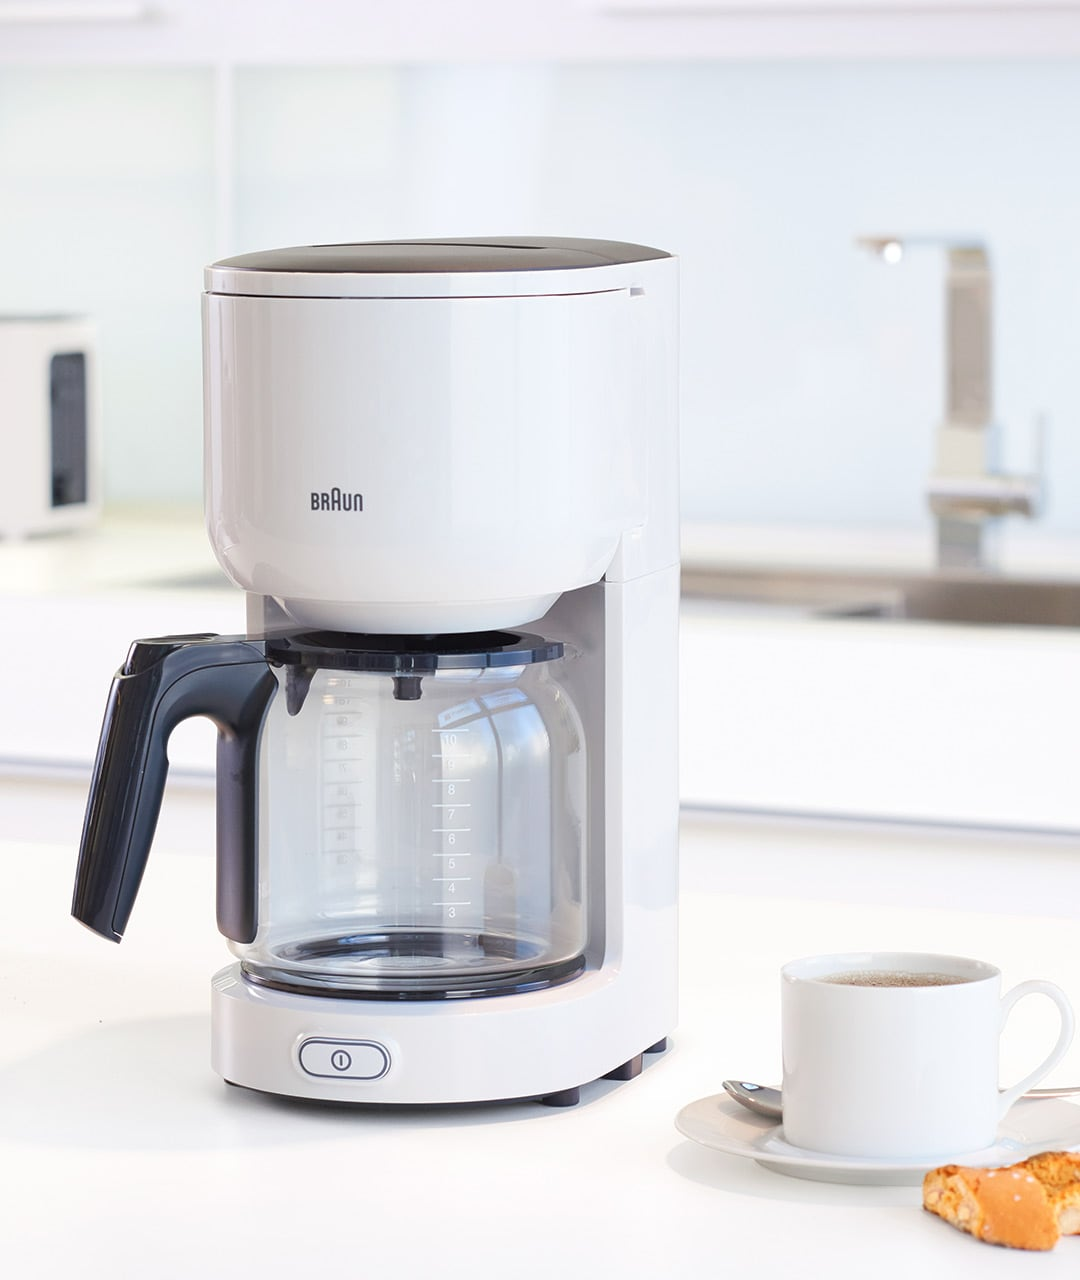 Braun PurEase Coffee maker